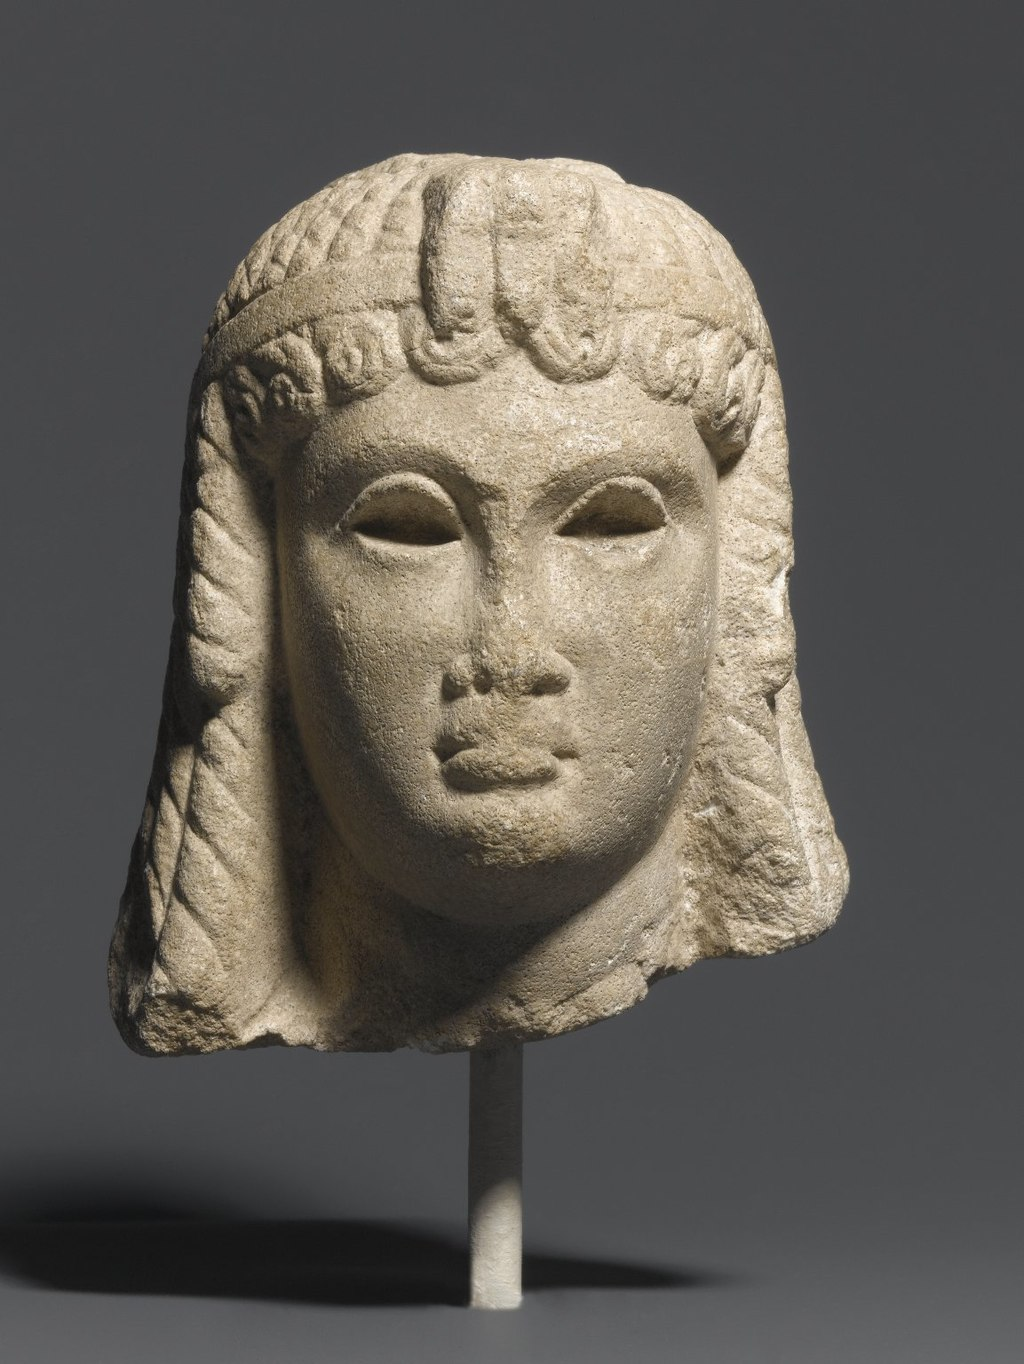 Ptolemaic queen, possibly Cleopatra